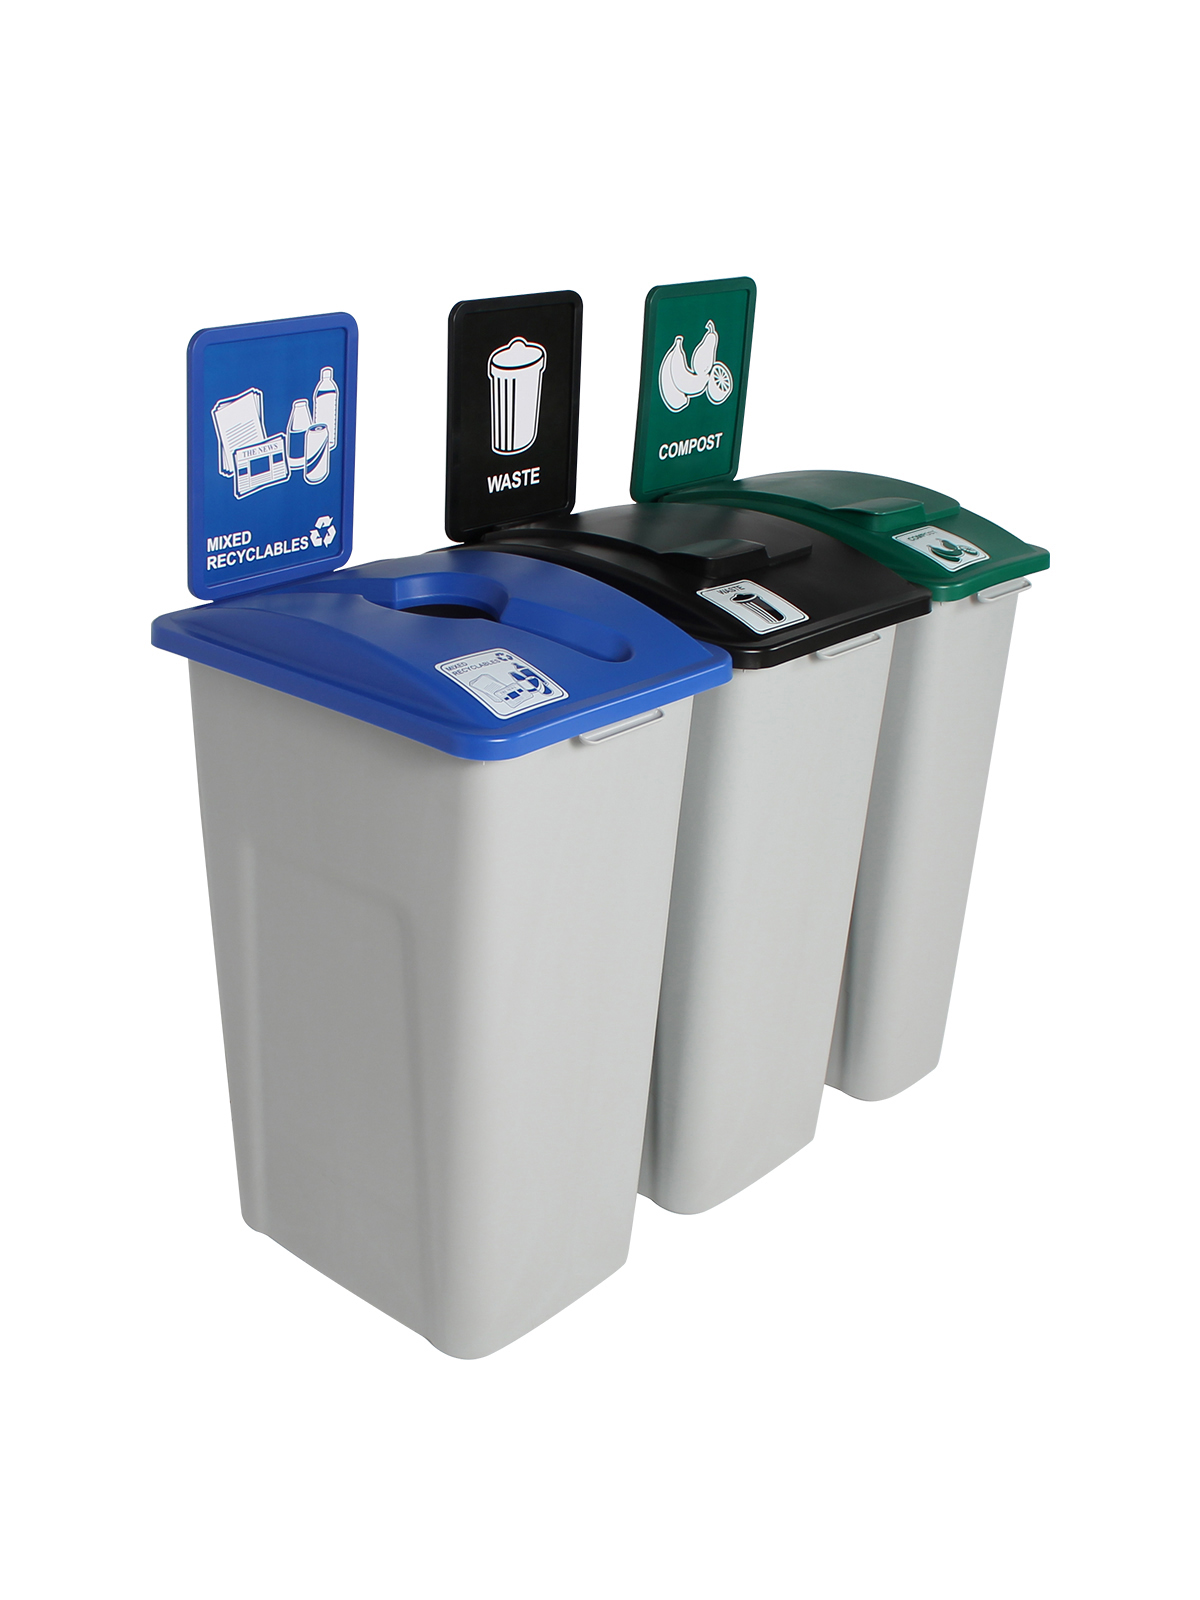 WASTE WATCHER XL - Triple - Mixed Recyclables-Compost-Waste - Mixed-Solid Lift-Solid Lift - Grey-Blue-Green-Black